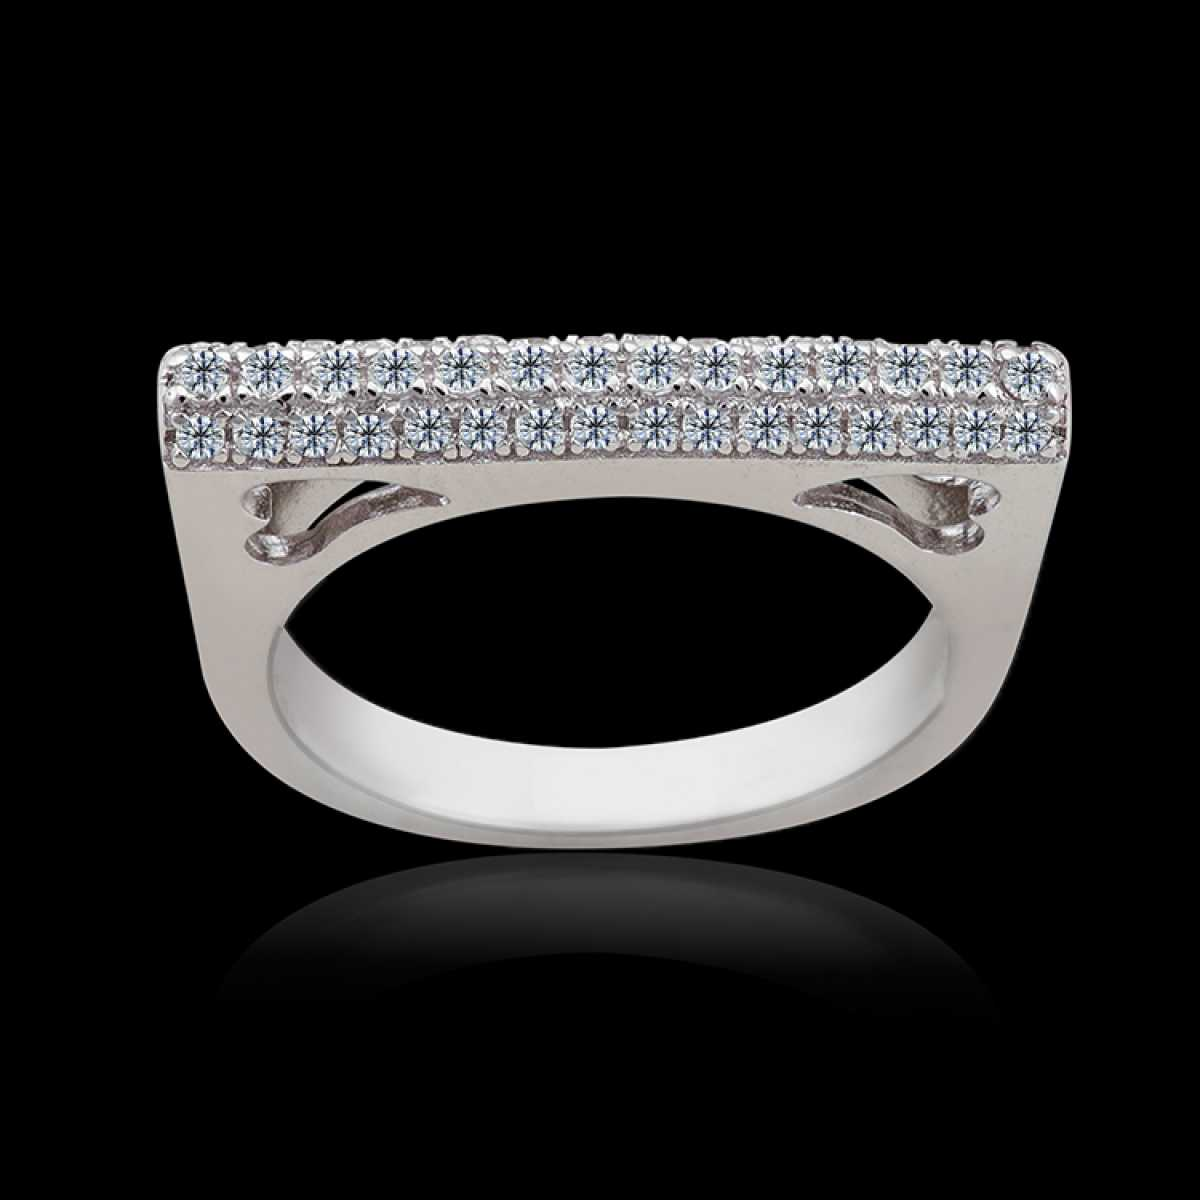 Unique And Stylish Silver Ring